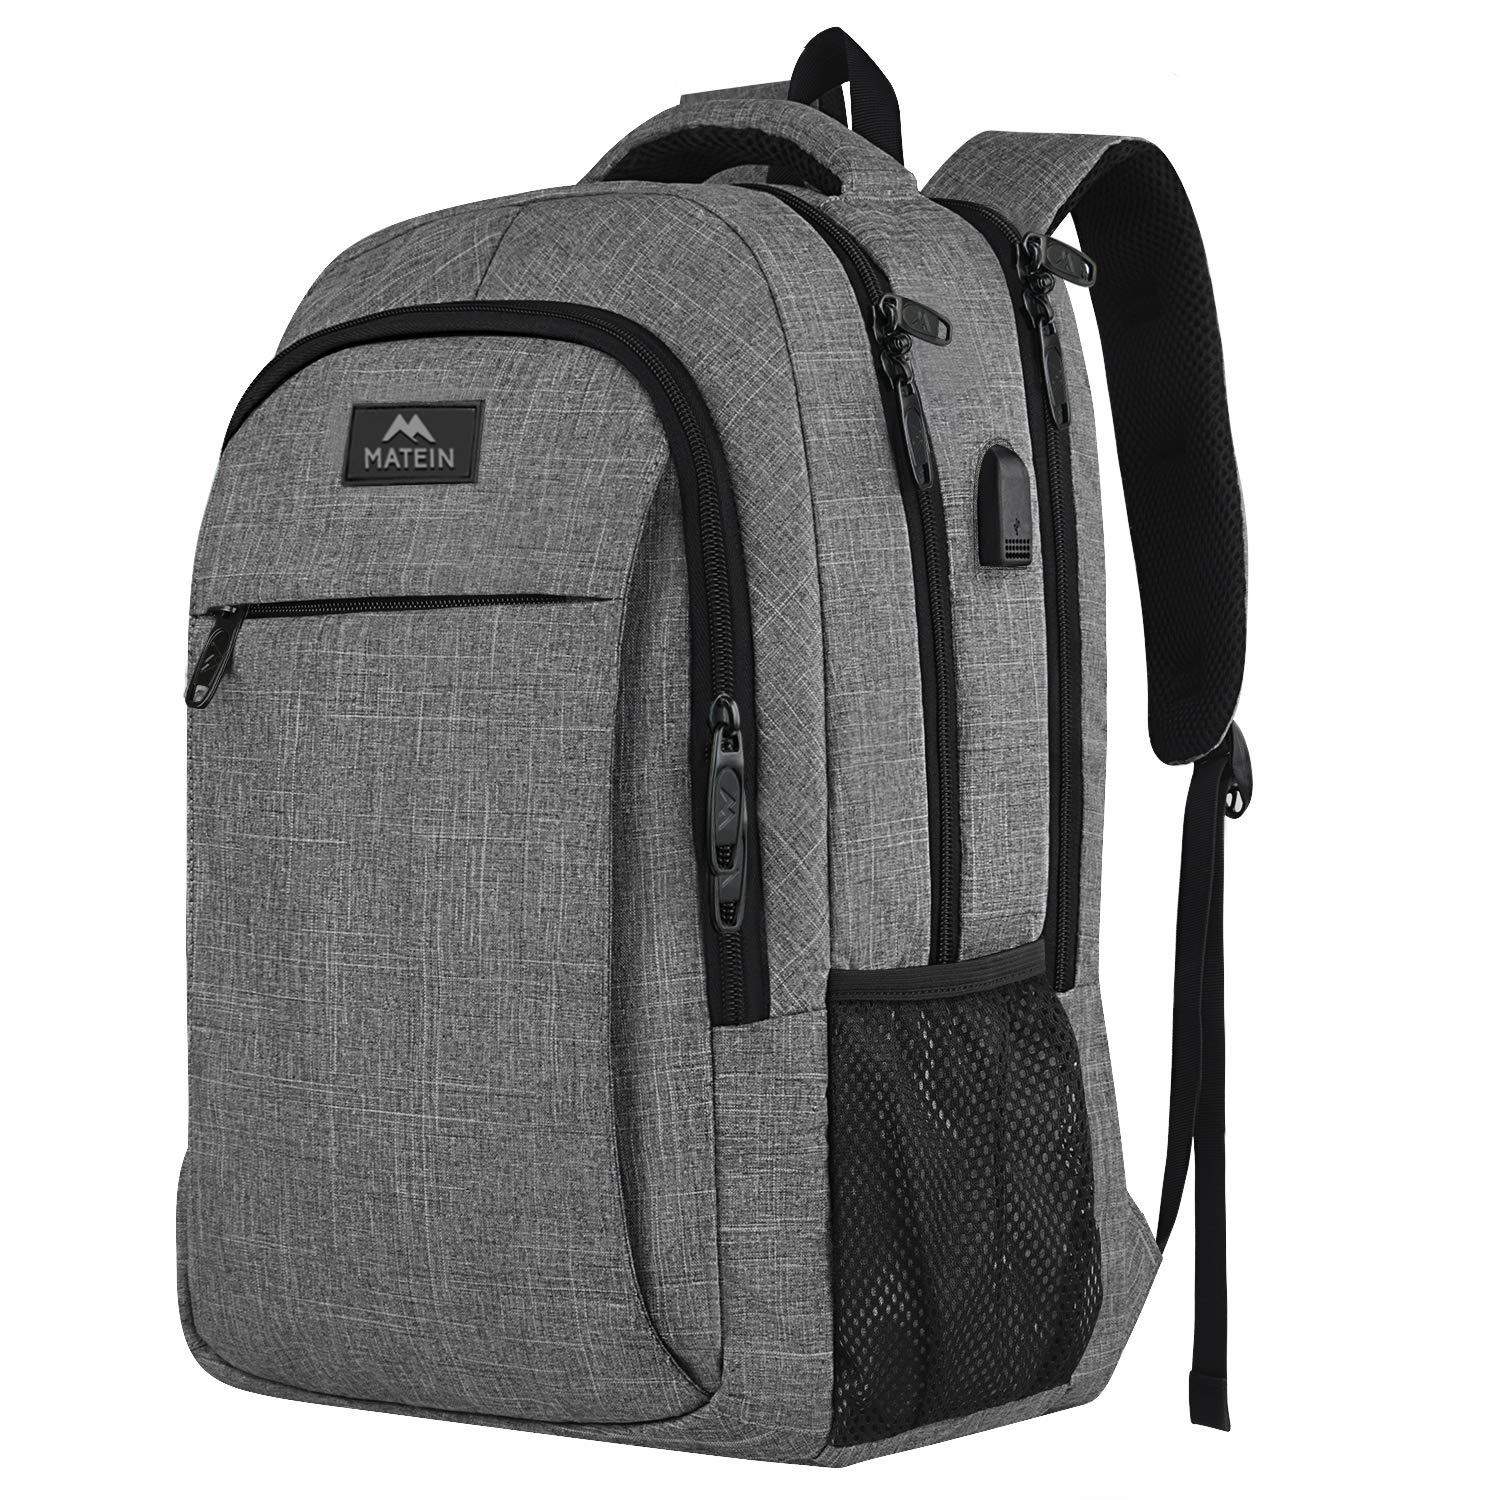 The MATEIN Travel Laptop Business Backpack travel product recommended by Guy Novik on Lifney.